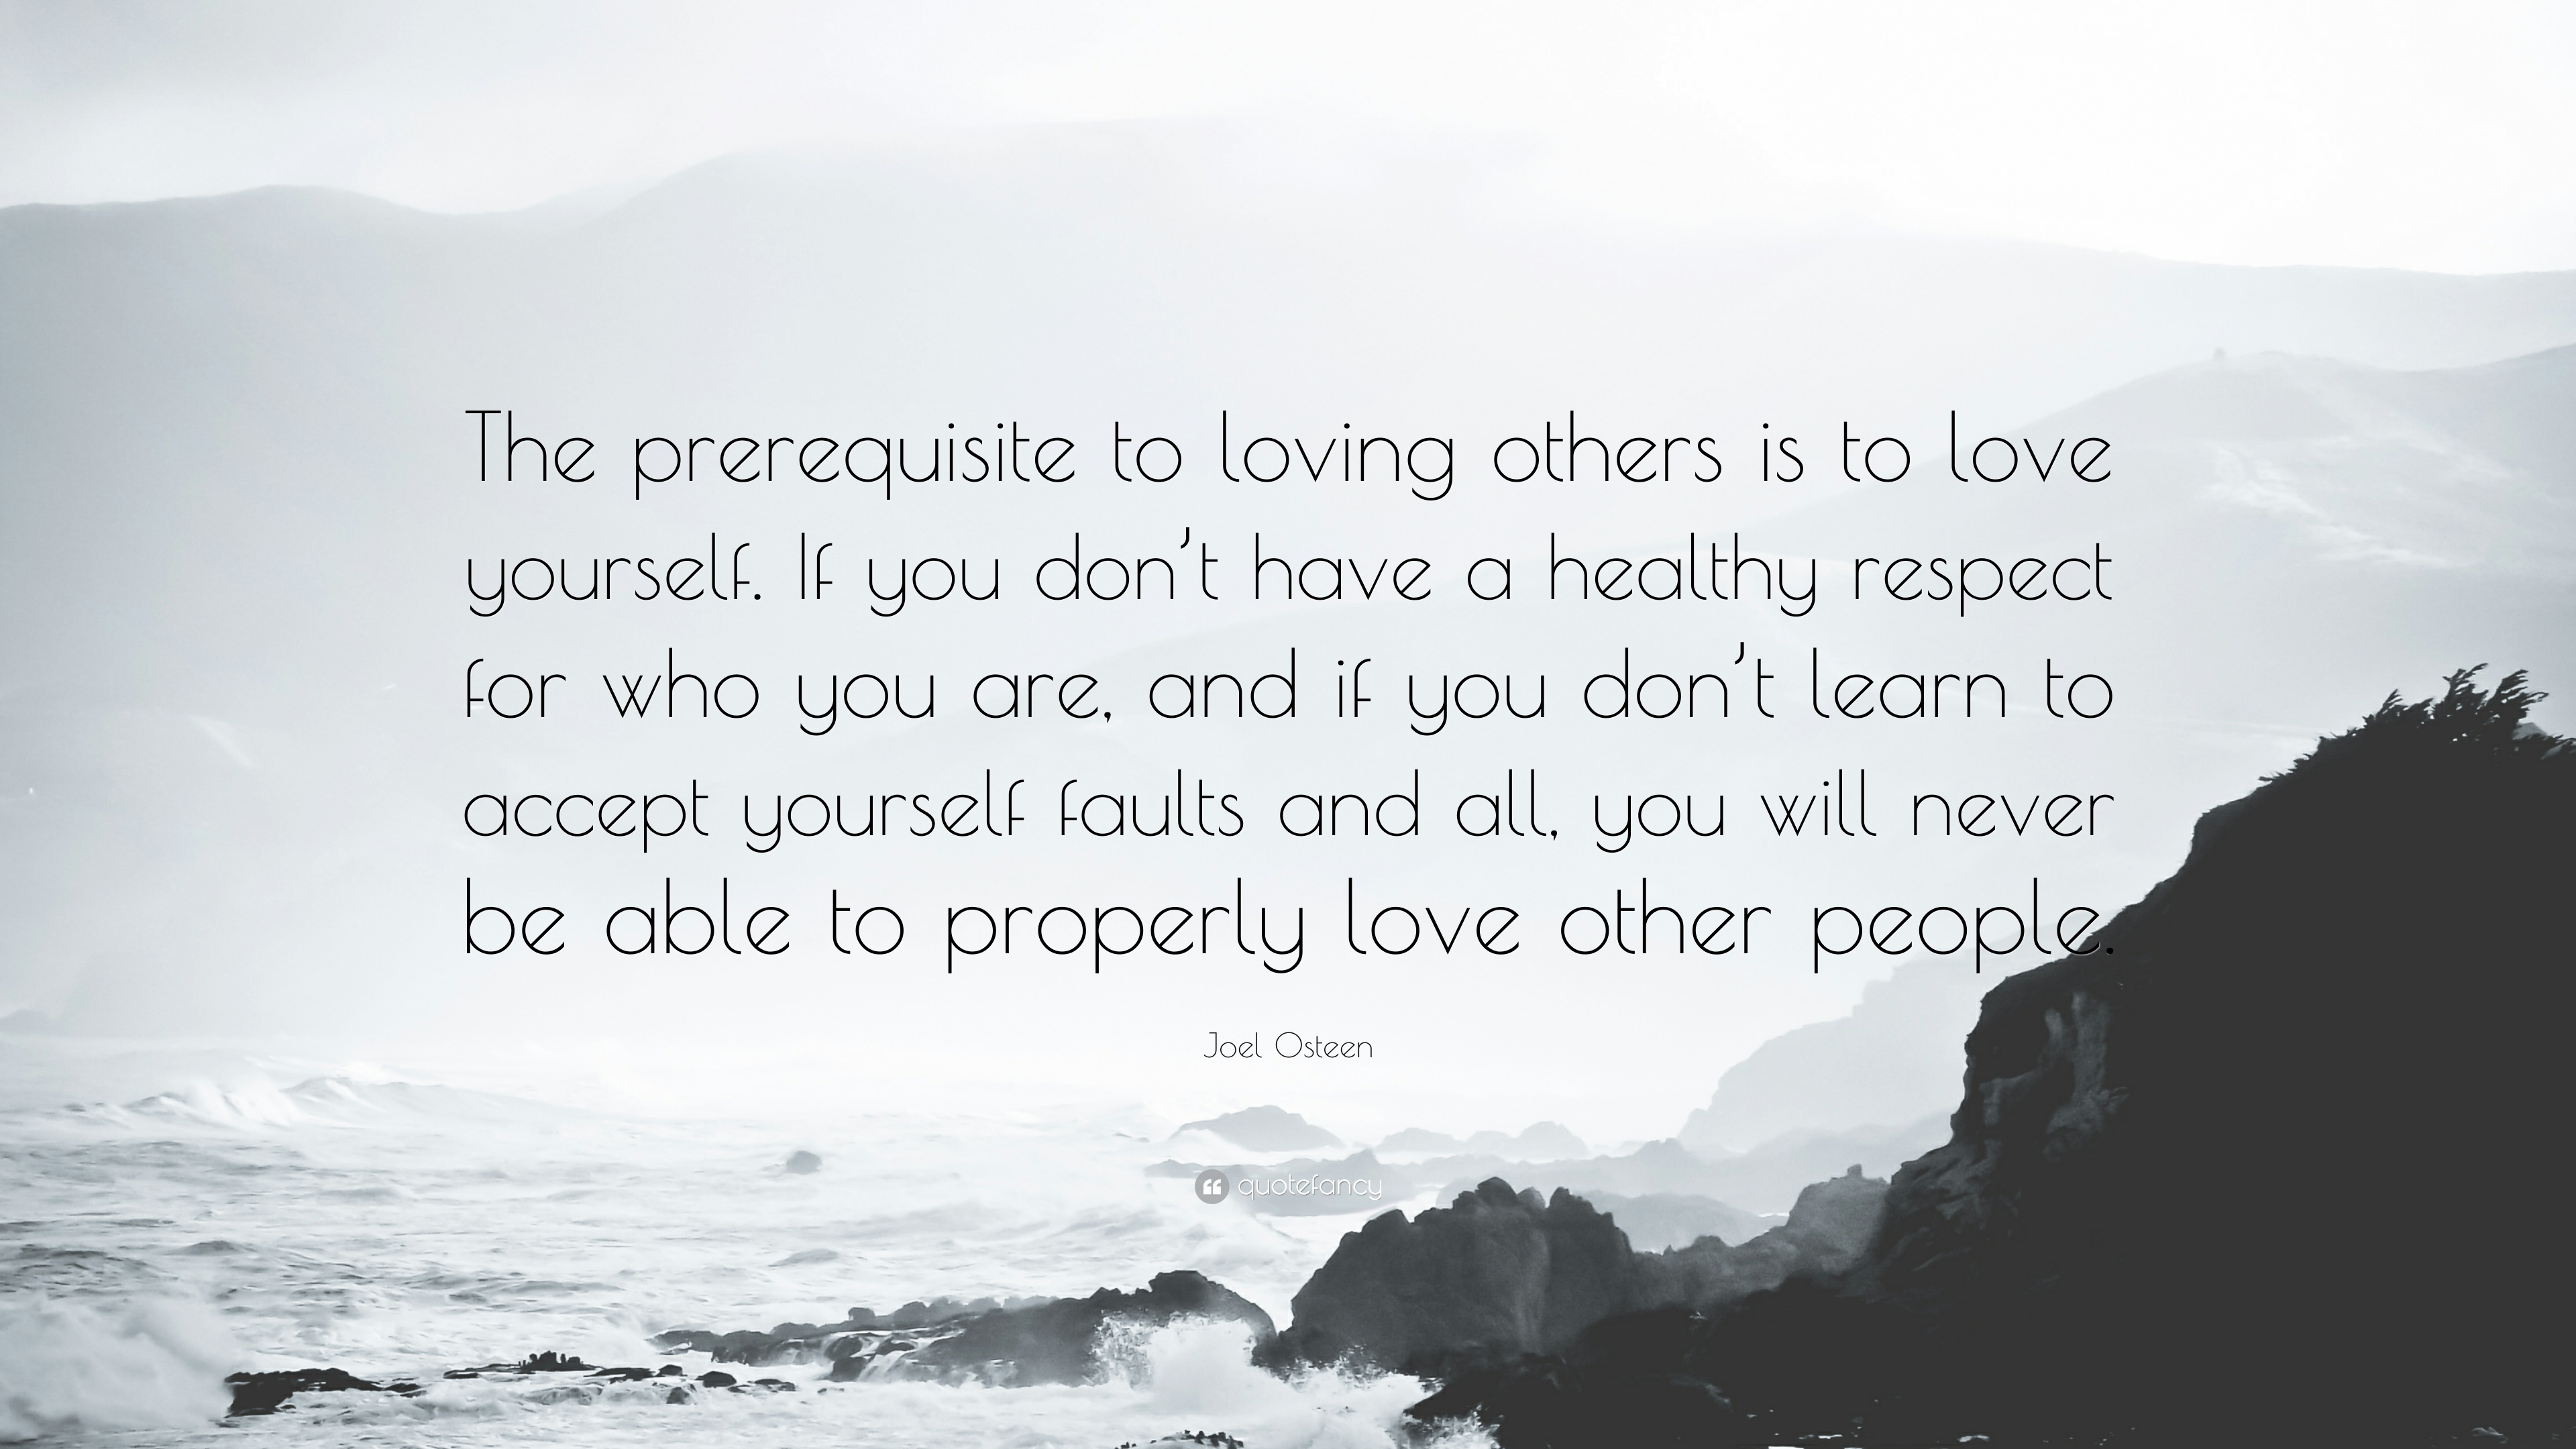 Joel Osteen Quote: U201cThe Prerequisite To Loving Others Is To Love Yourself.  If